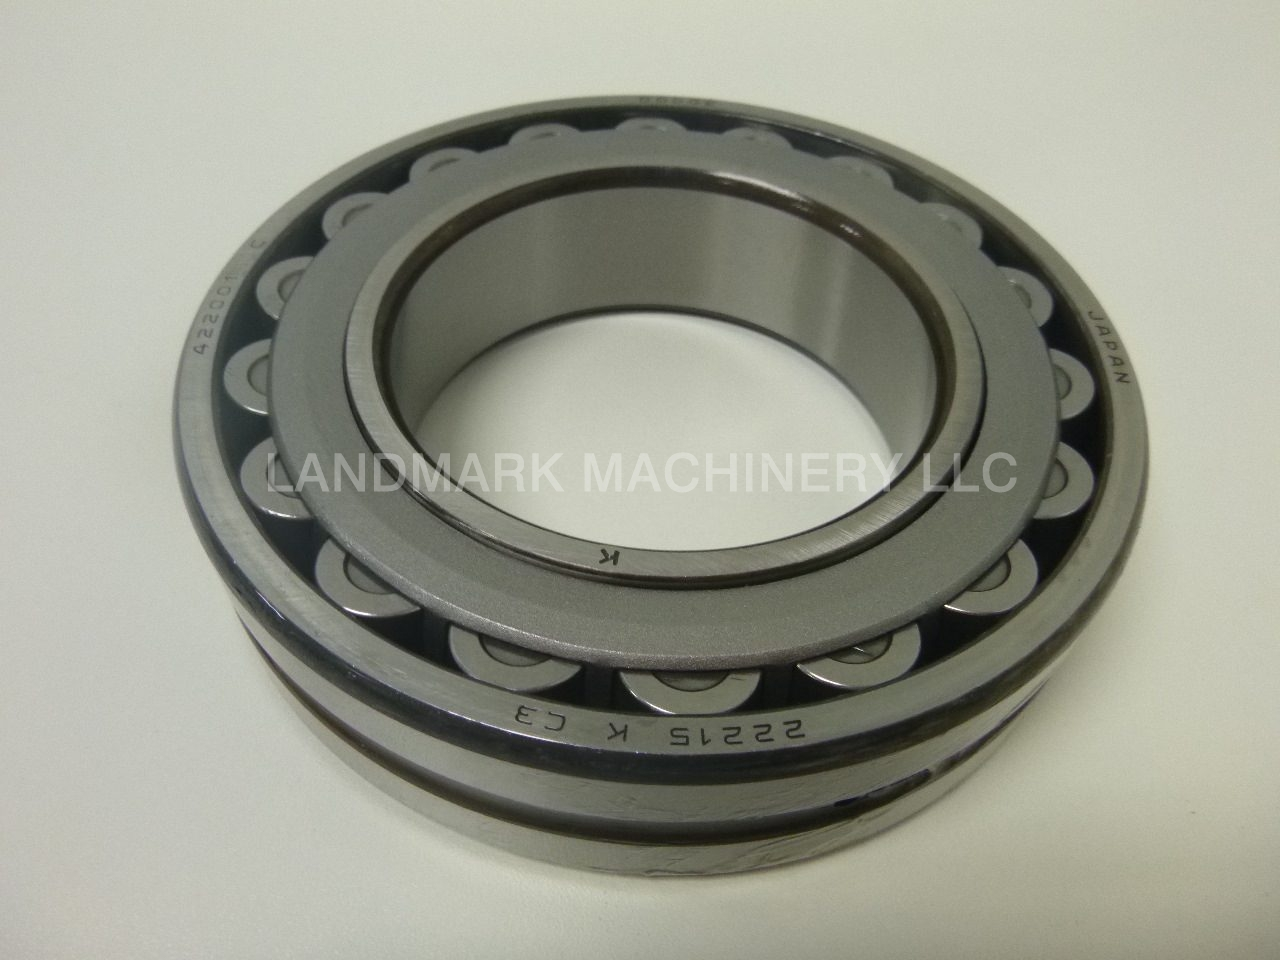 Bearing Machine Bearing Drum 2 7 16